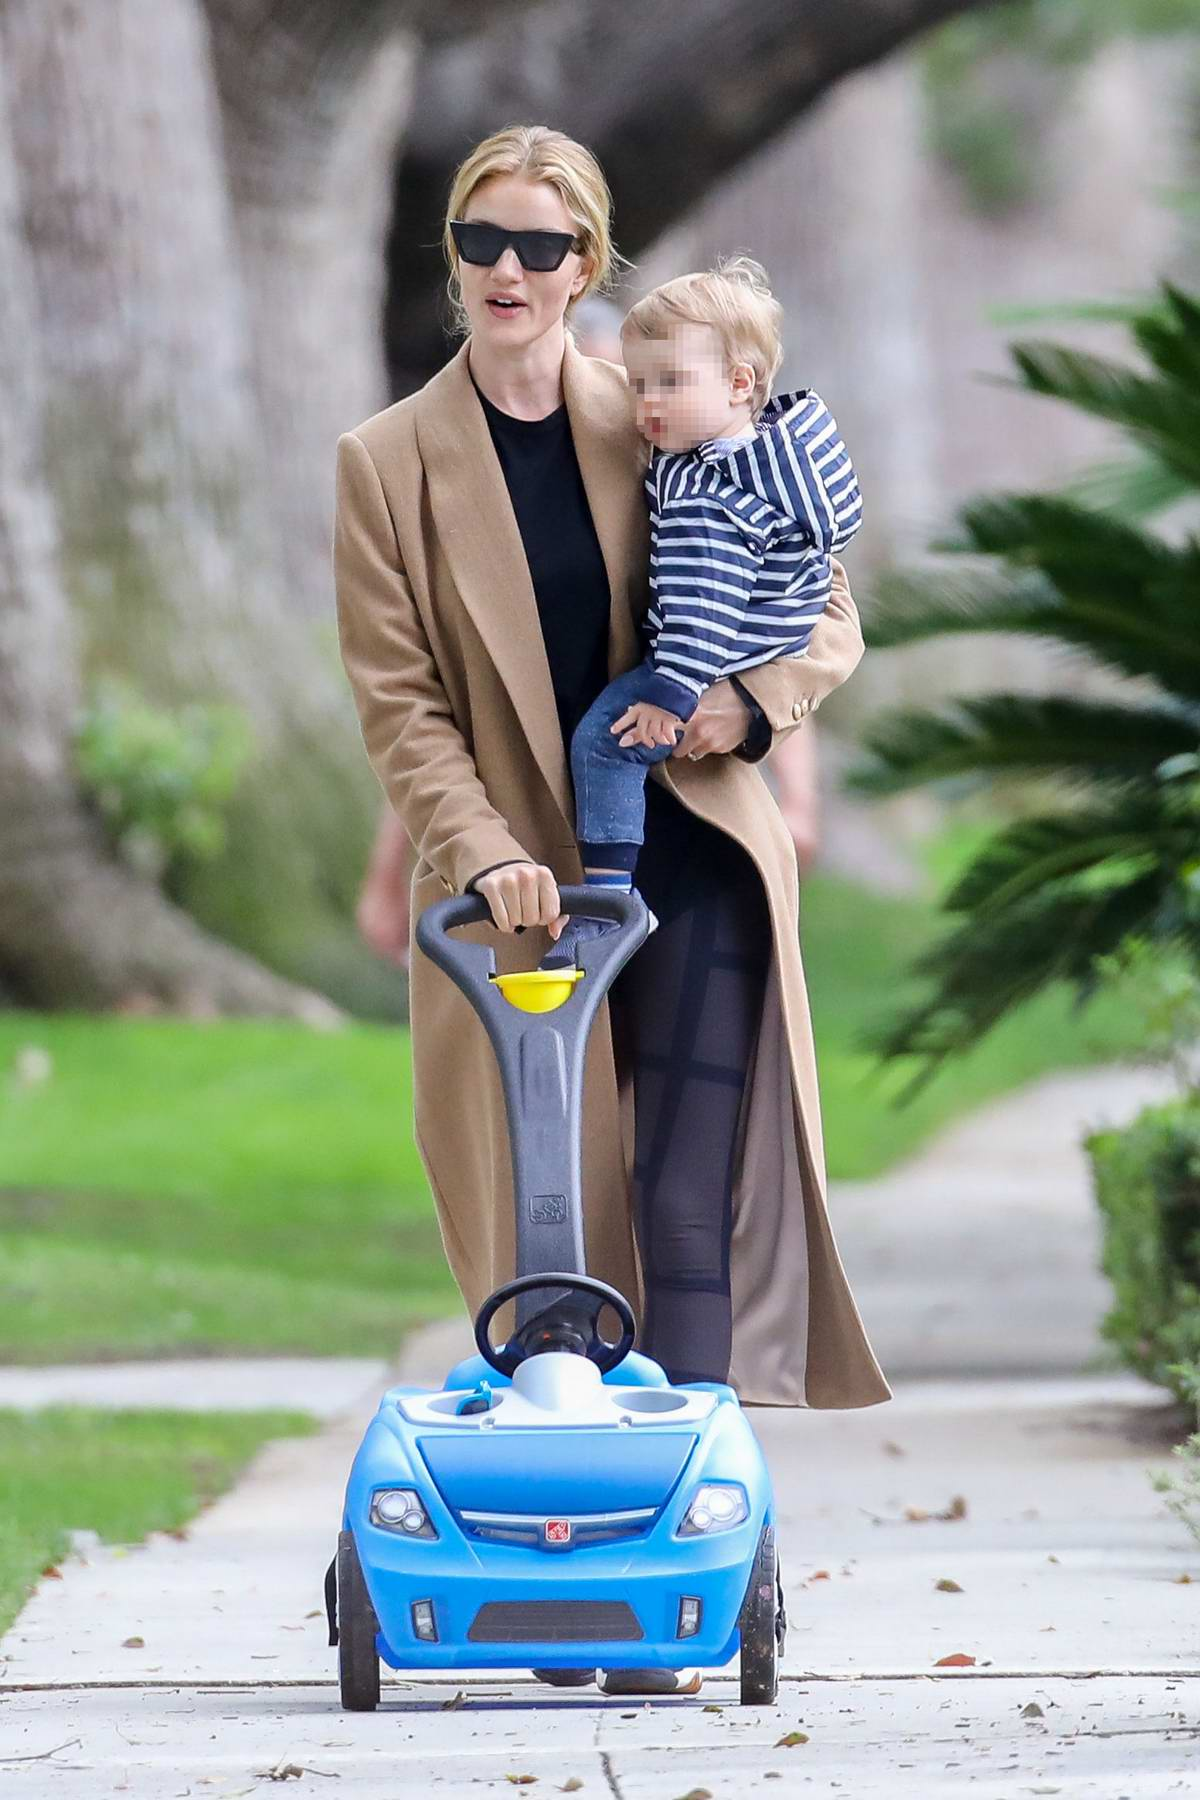 Rosie Huntington-Whiteley takes her son Jack for a stroll in Los Angeles